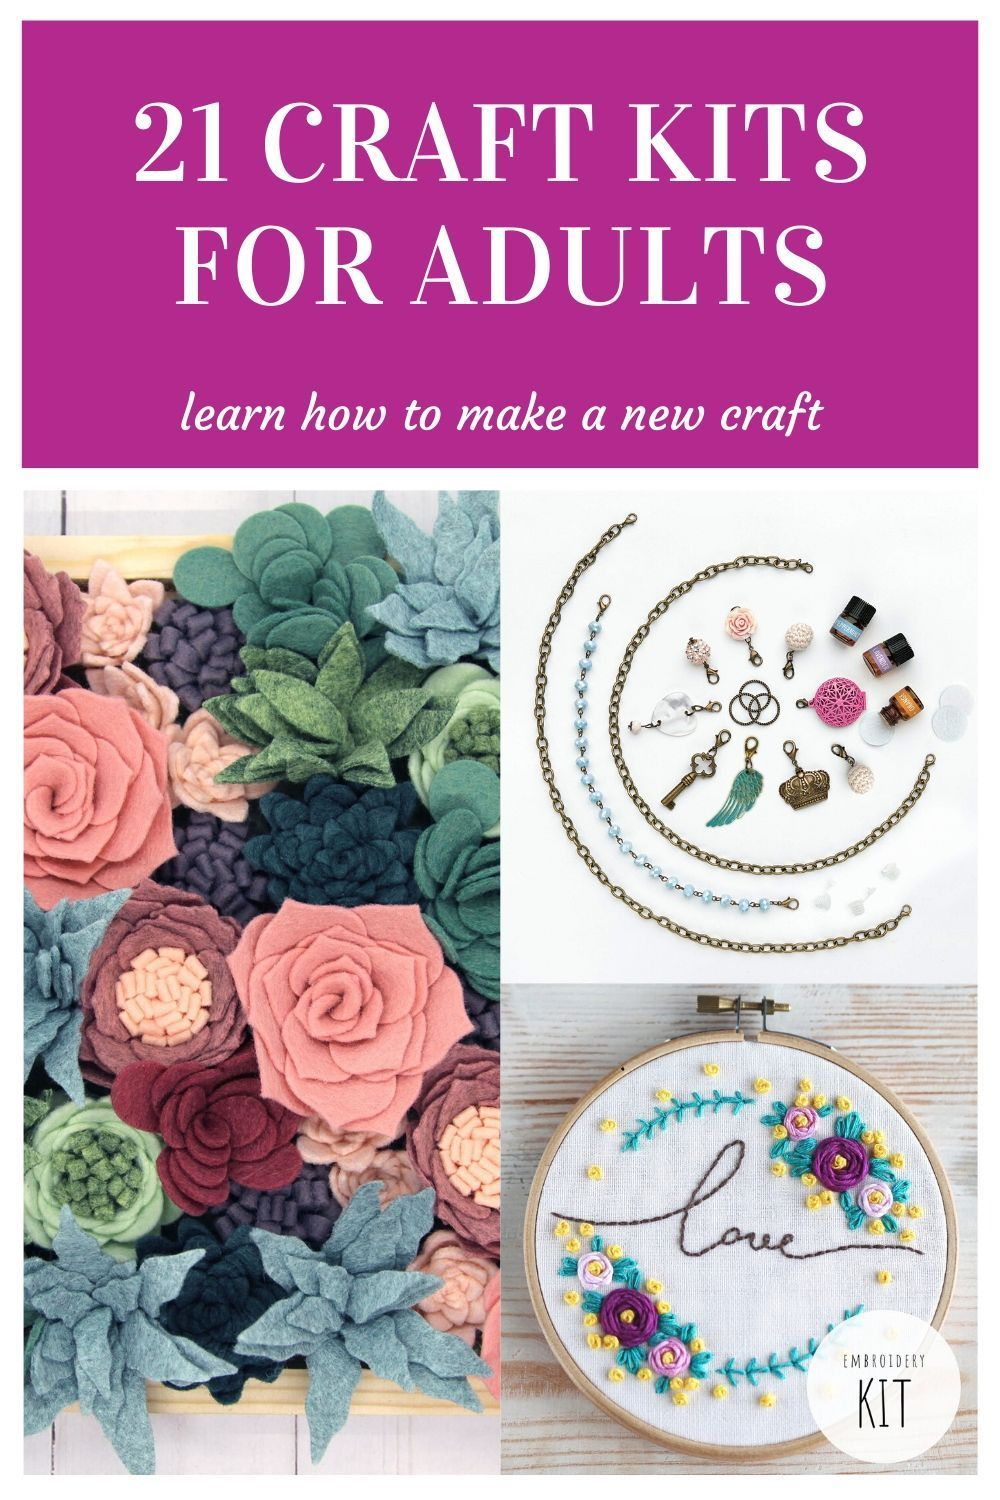 21 Of The Best Craft Kits For Adults In 2020 Teenager Crafts Craft Kits Diy Crafts For Adults